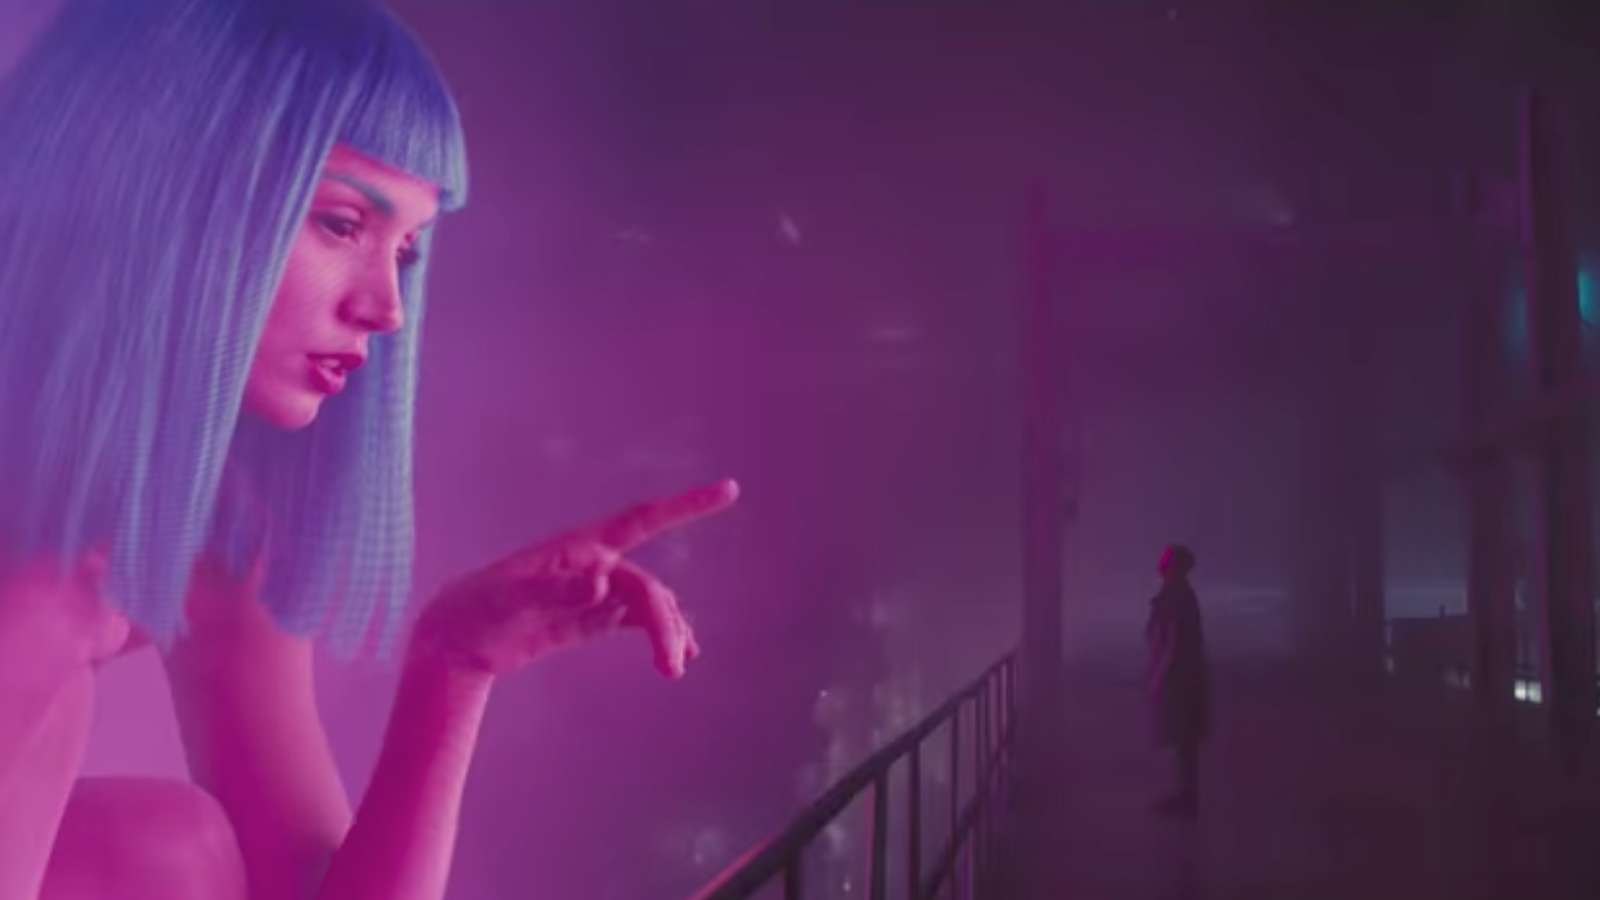 photo image New Blade Runner 2049 Trailer Shows More of the Dirty, Desperate Future